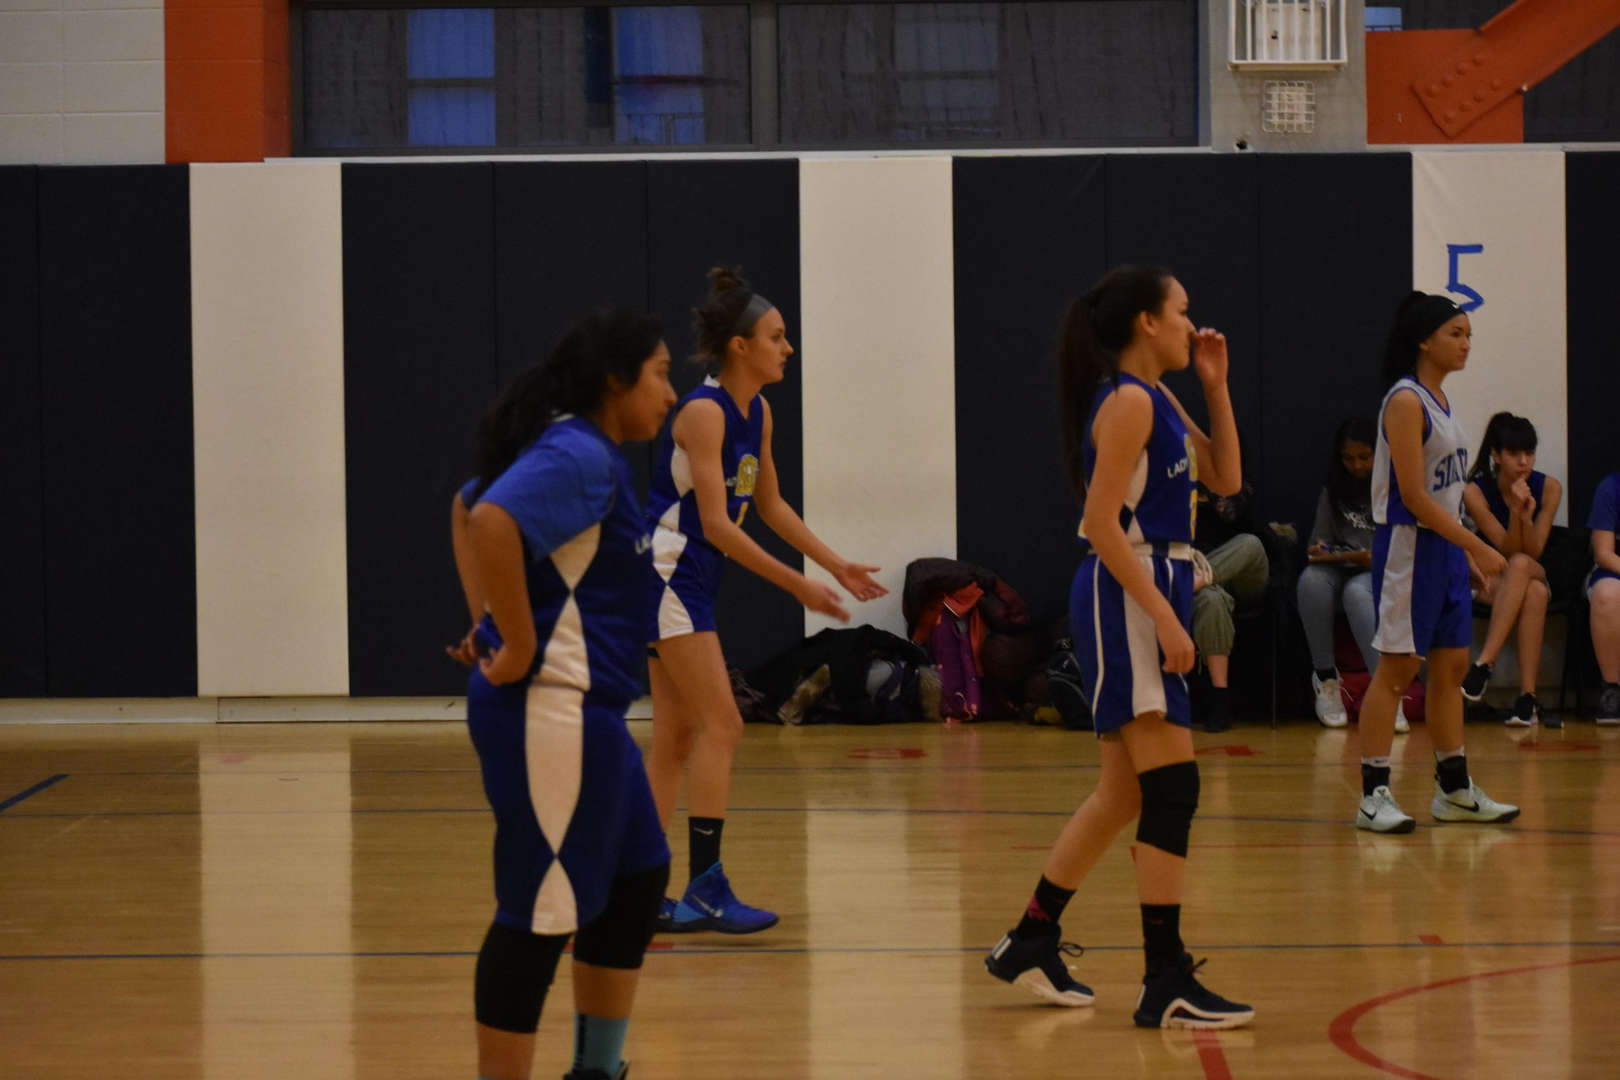 Members of the girls' basketball team waiting in anticipation on the court